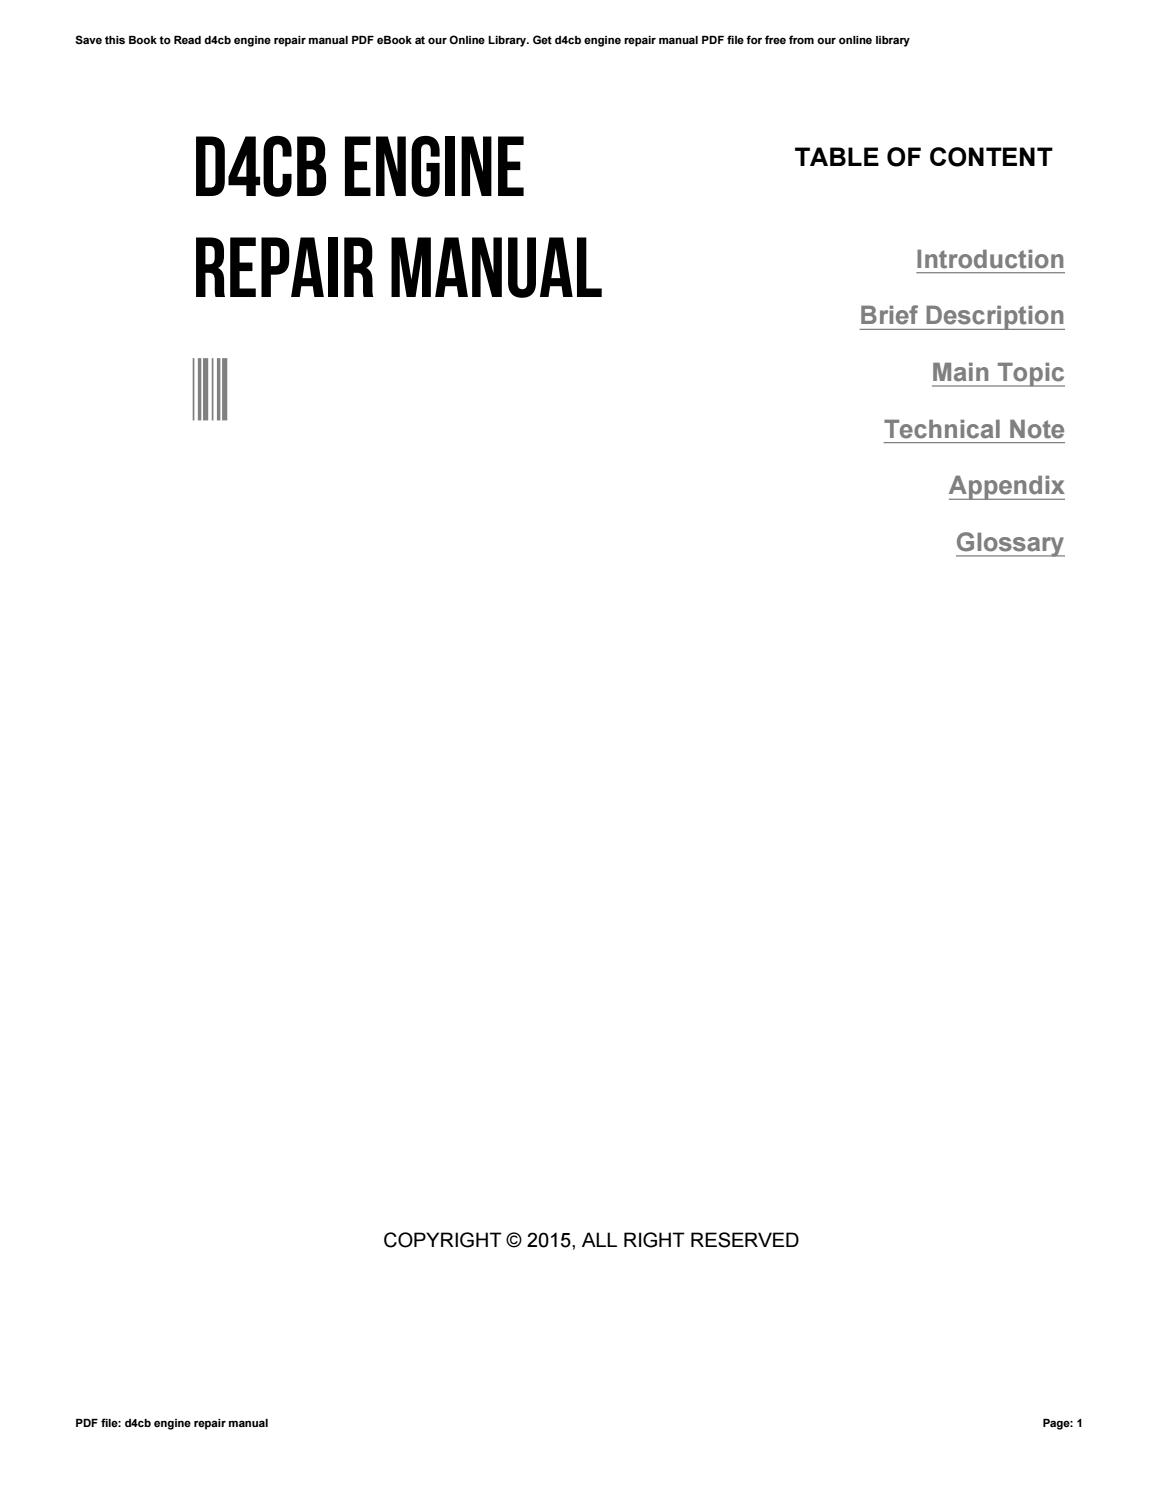 D4cb Engine Repair Manual Pdf